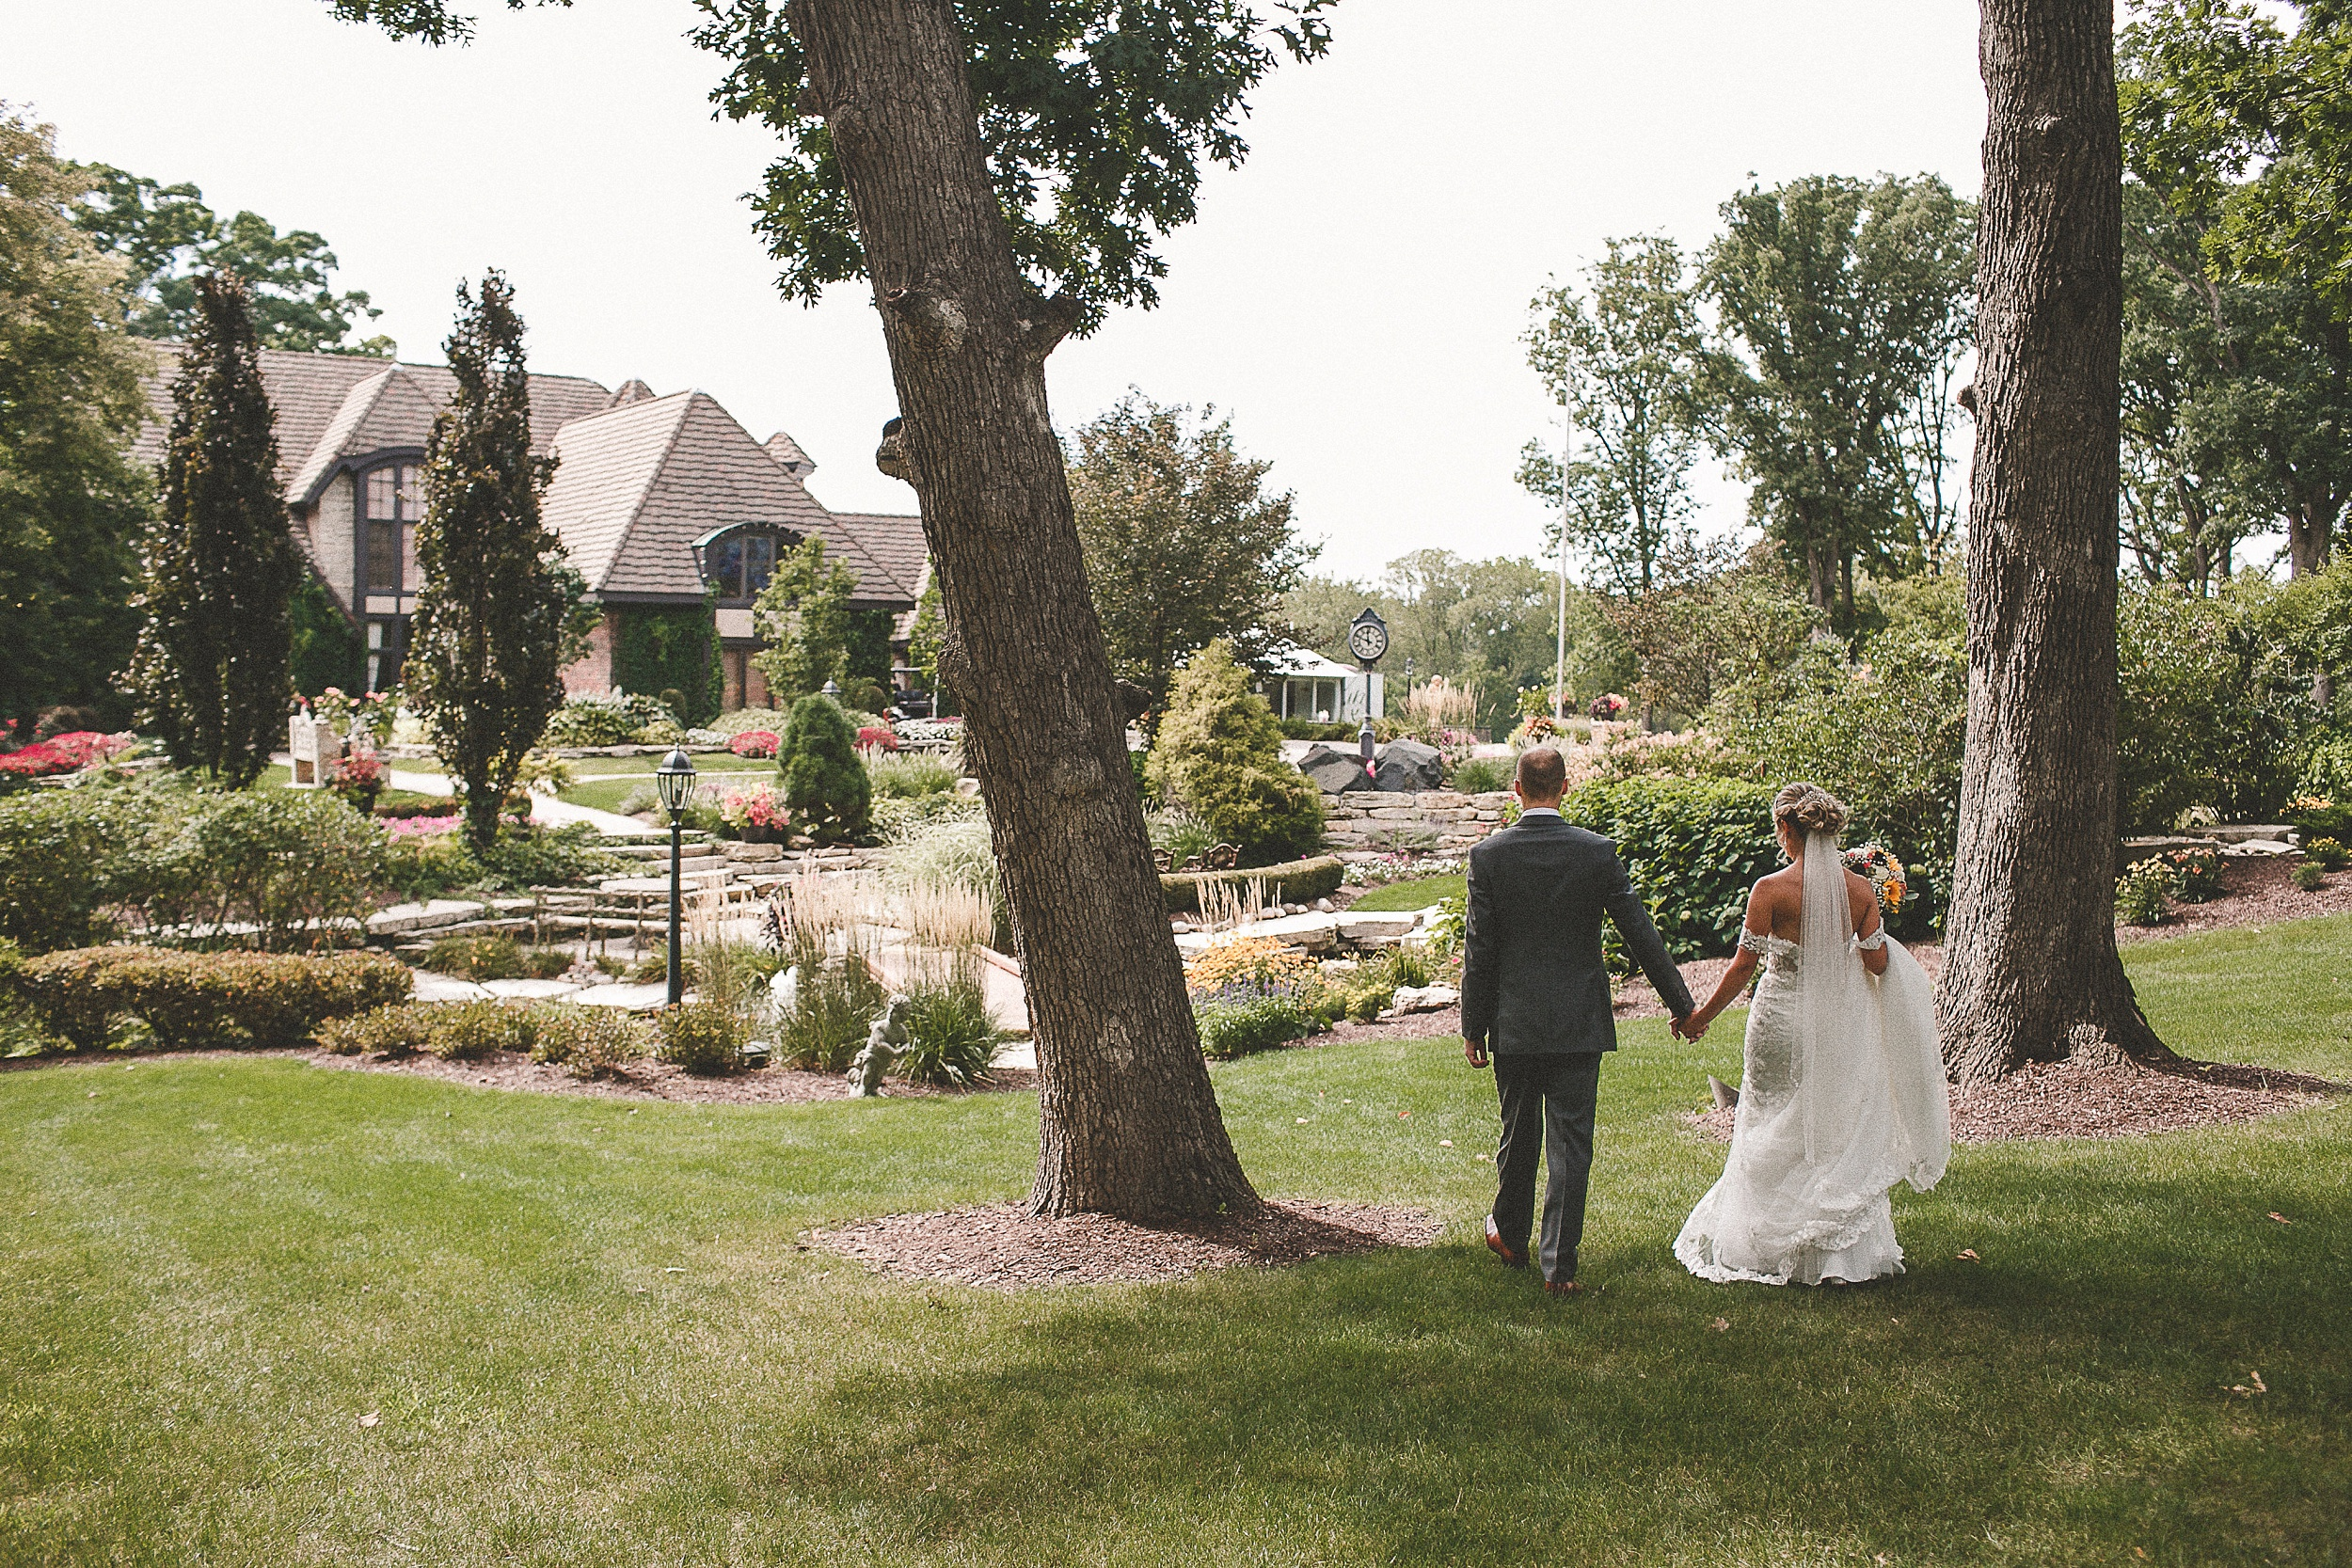 monte-bello-estates-lemont-il-wedding-photography_074.jpg